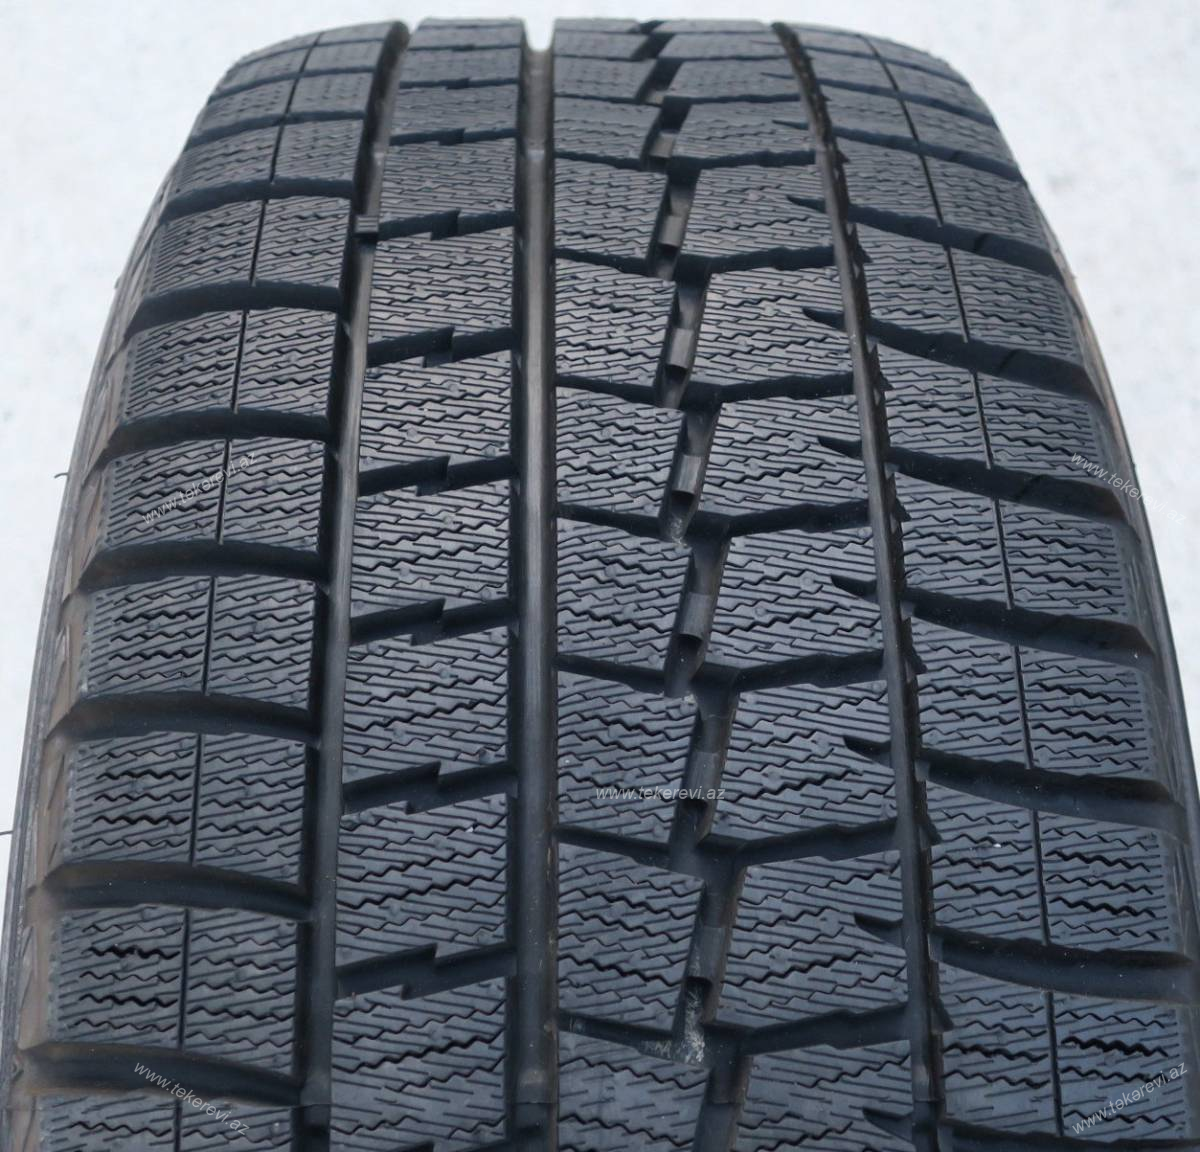 Horizon Hemisphere HW501 Winter 175/70R13